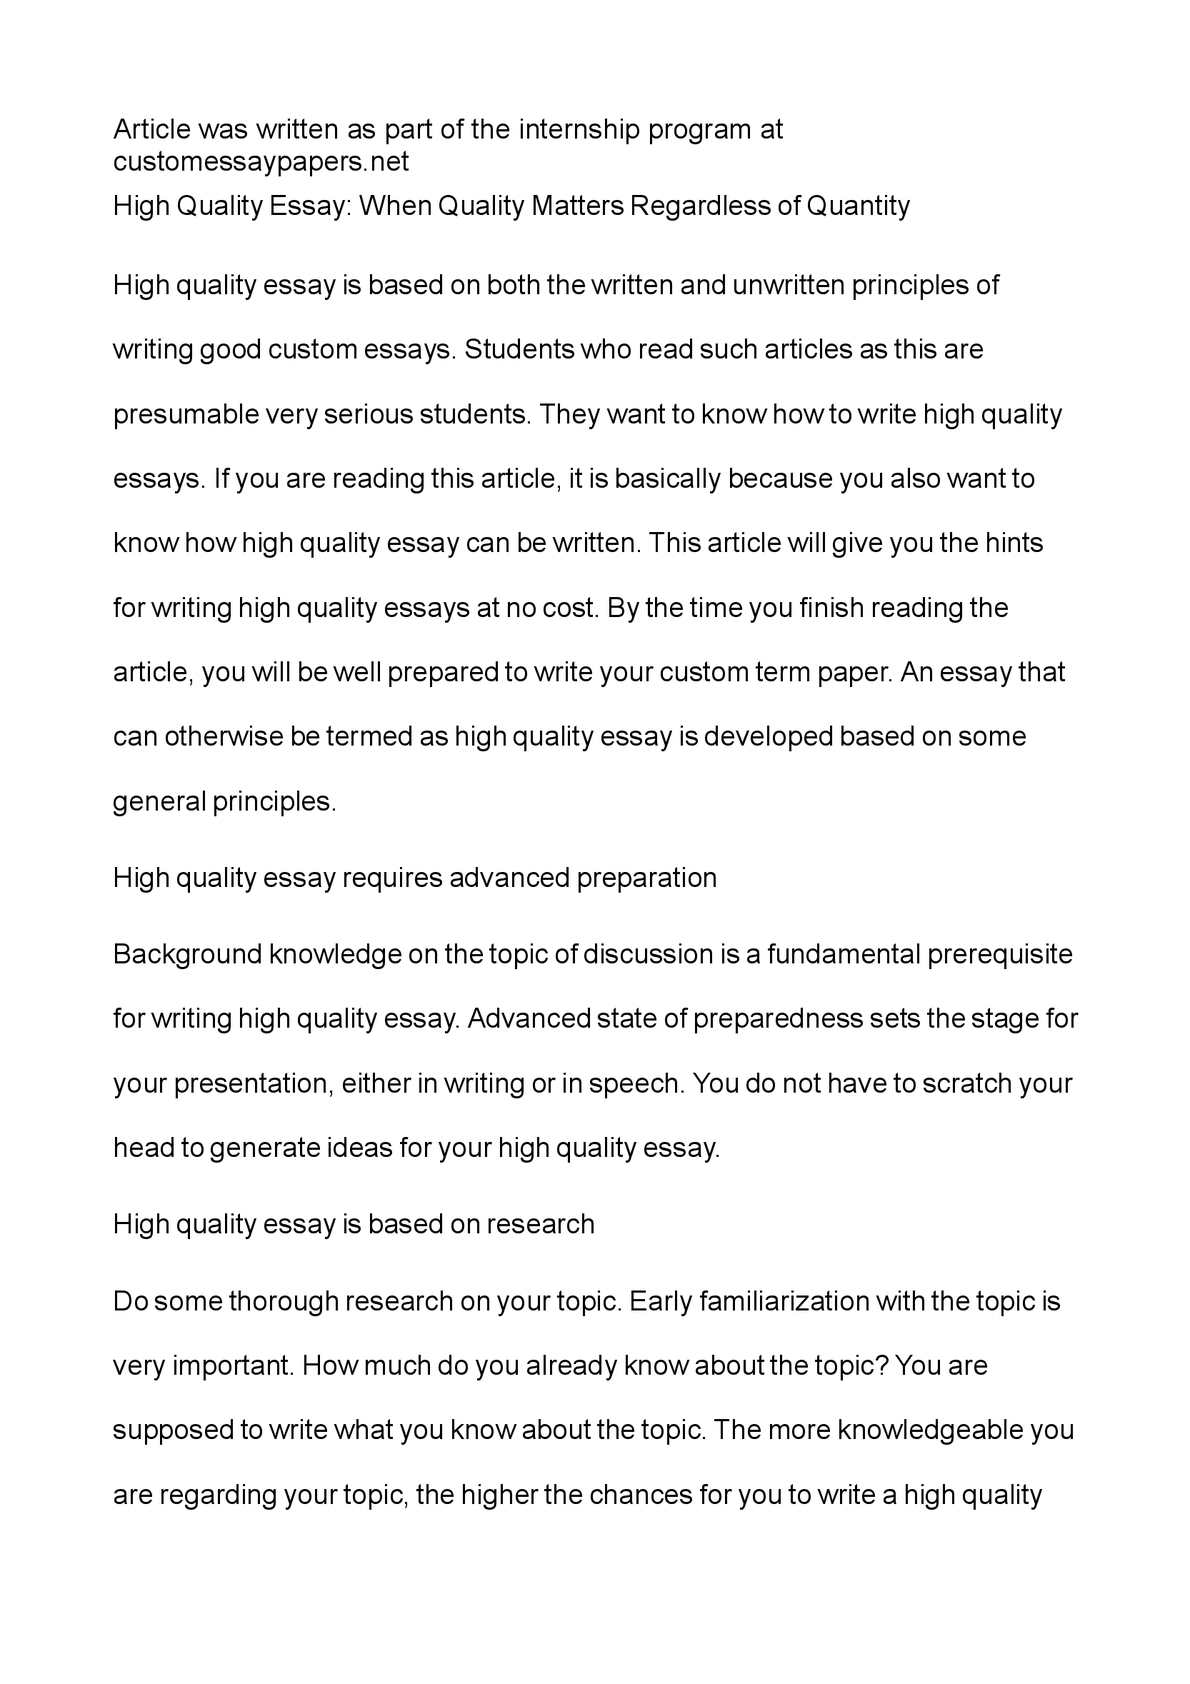 High School Persuasive Essay Examples Calamo  High Quality Essay When Quality Matters Regardless Of Quantity An Essay On Science also Essay Examples High School Calamo  High Quality Essay When Quality Matters Regardless Of  Compare And Contrast Essay Topics For High School